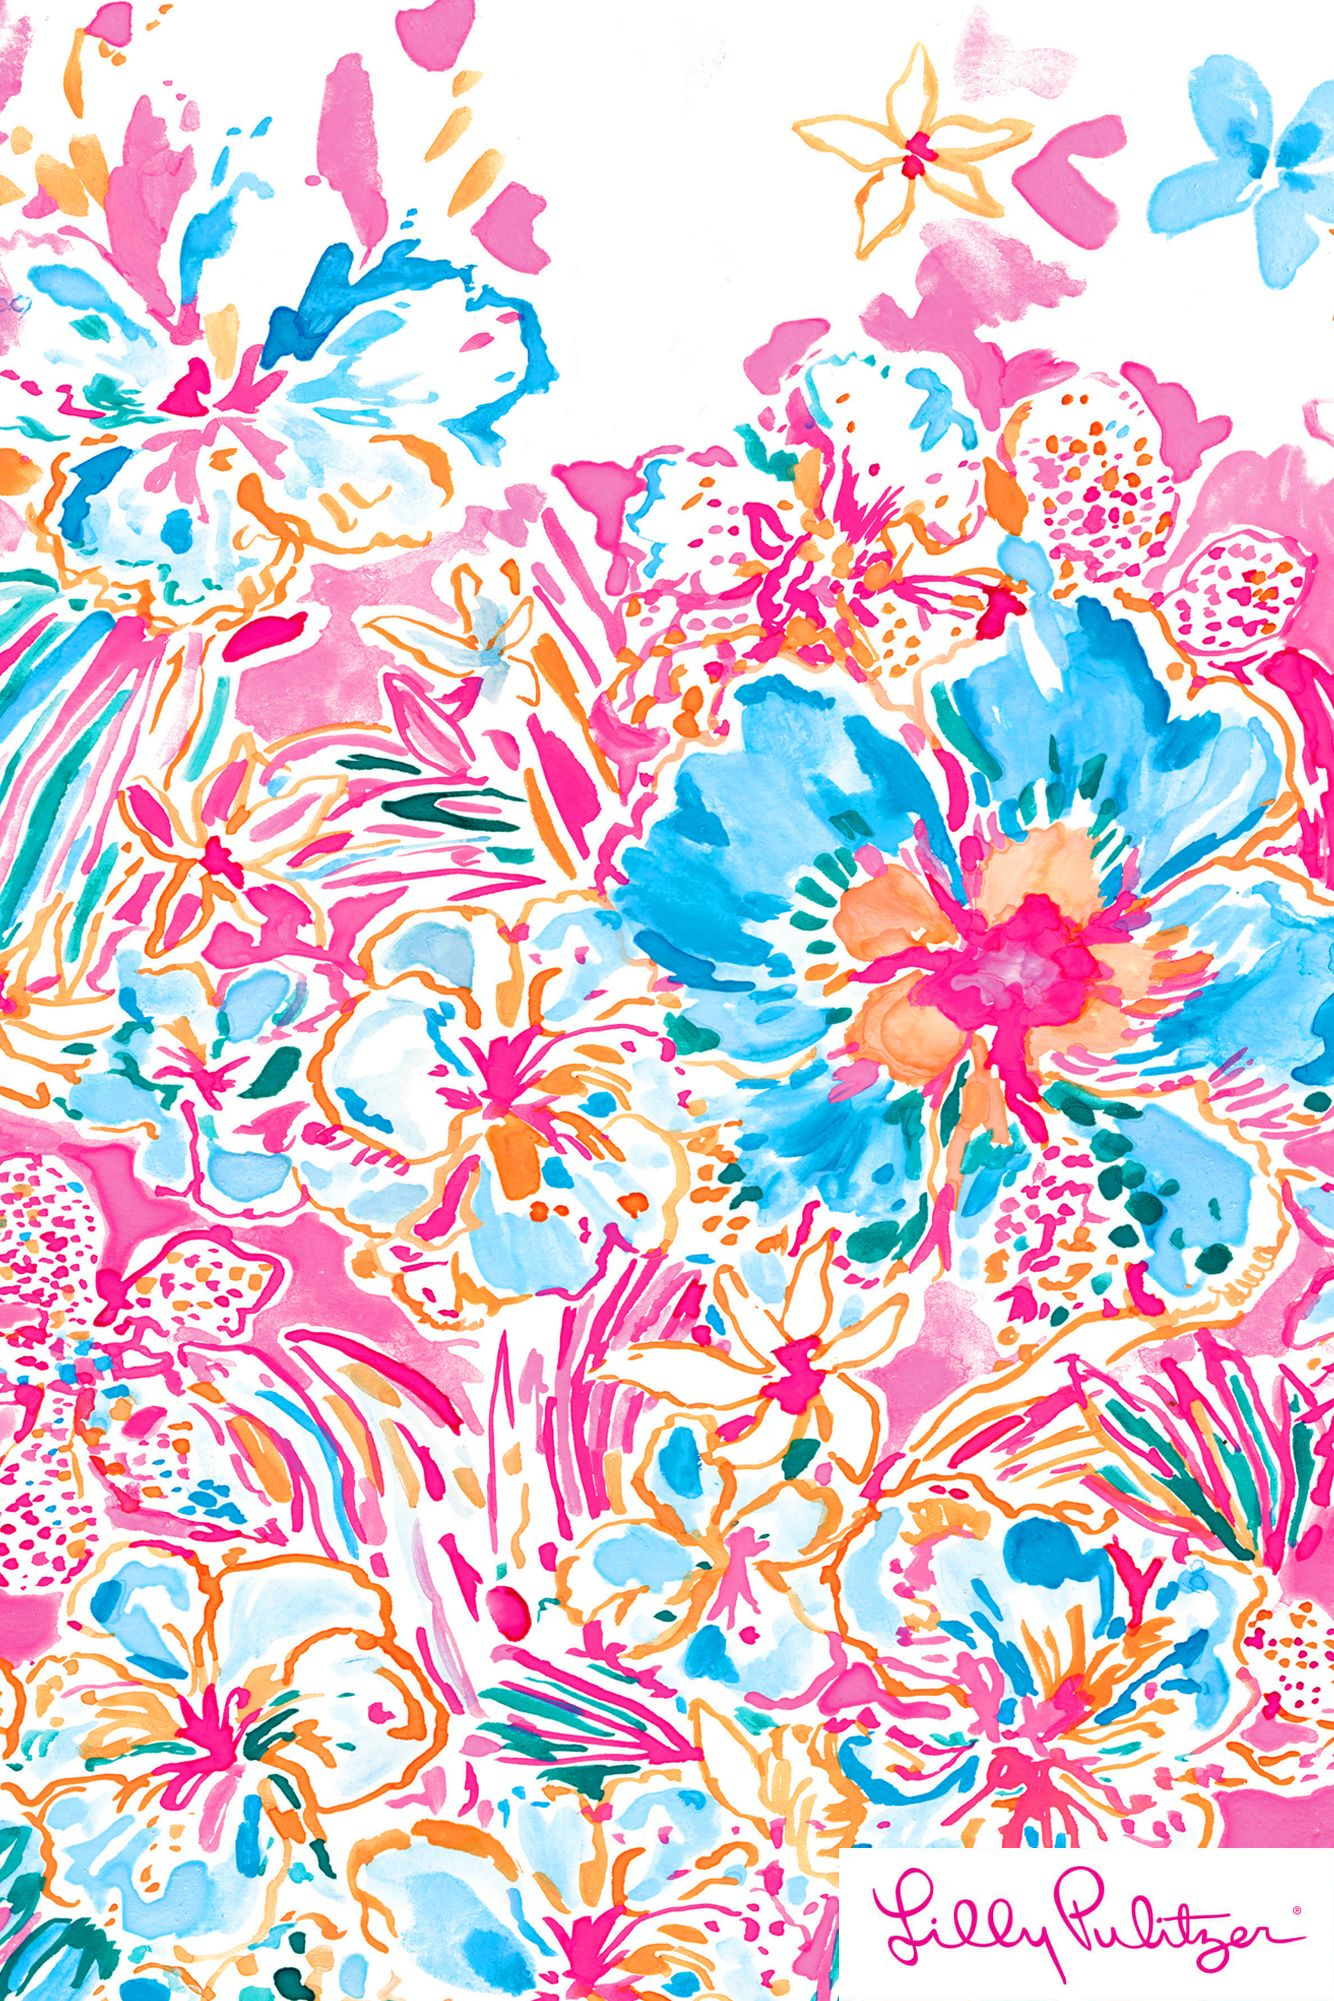 Resort Escape Floral - Lilly Pulitzer x Starbucks 2017 | Wallpapers ...